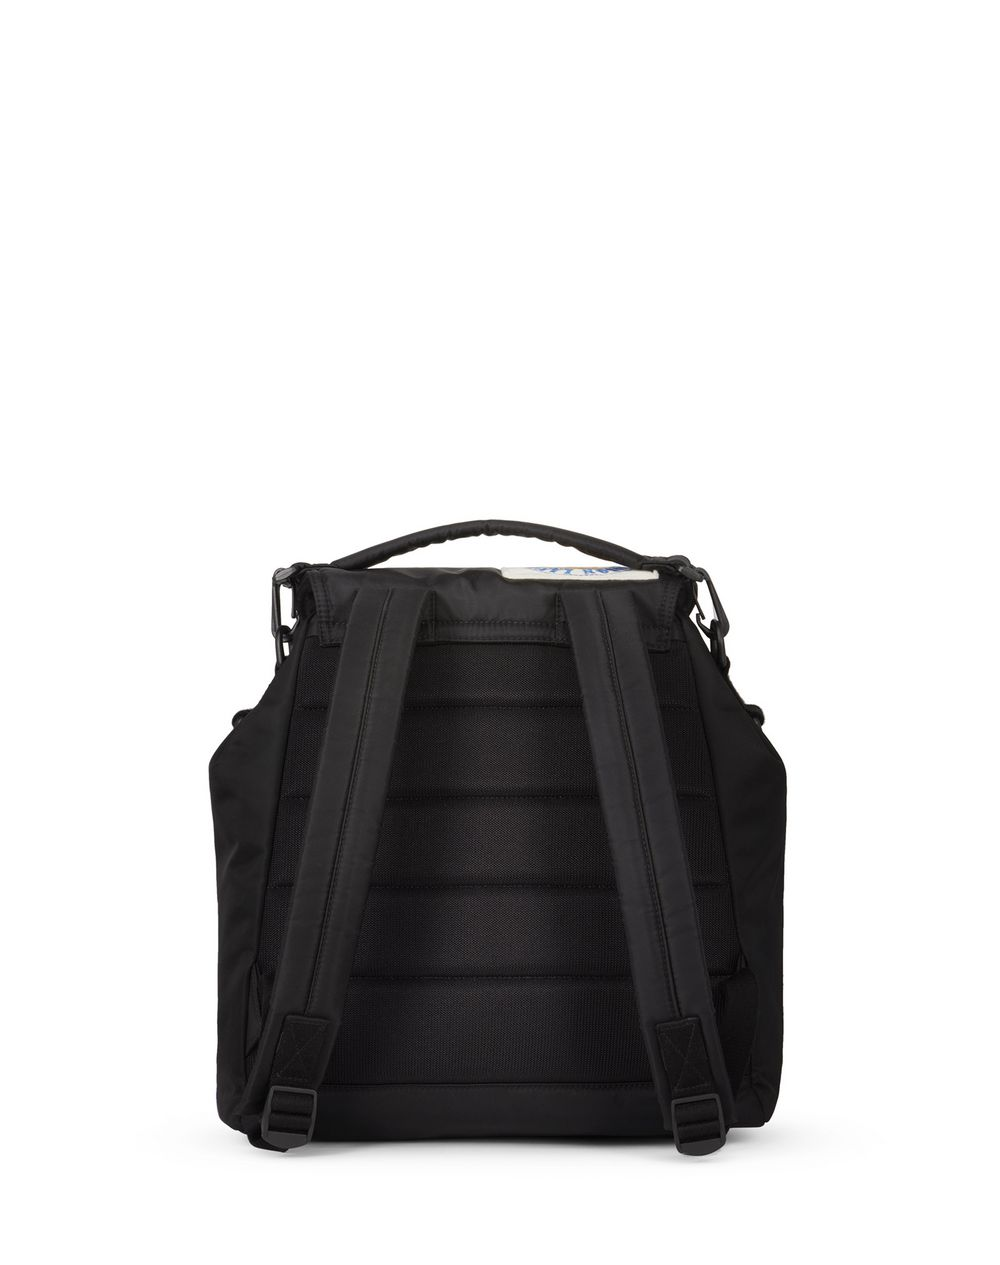 NYLON DUVET LABELS BACKPACK MM - Lanvin